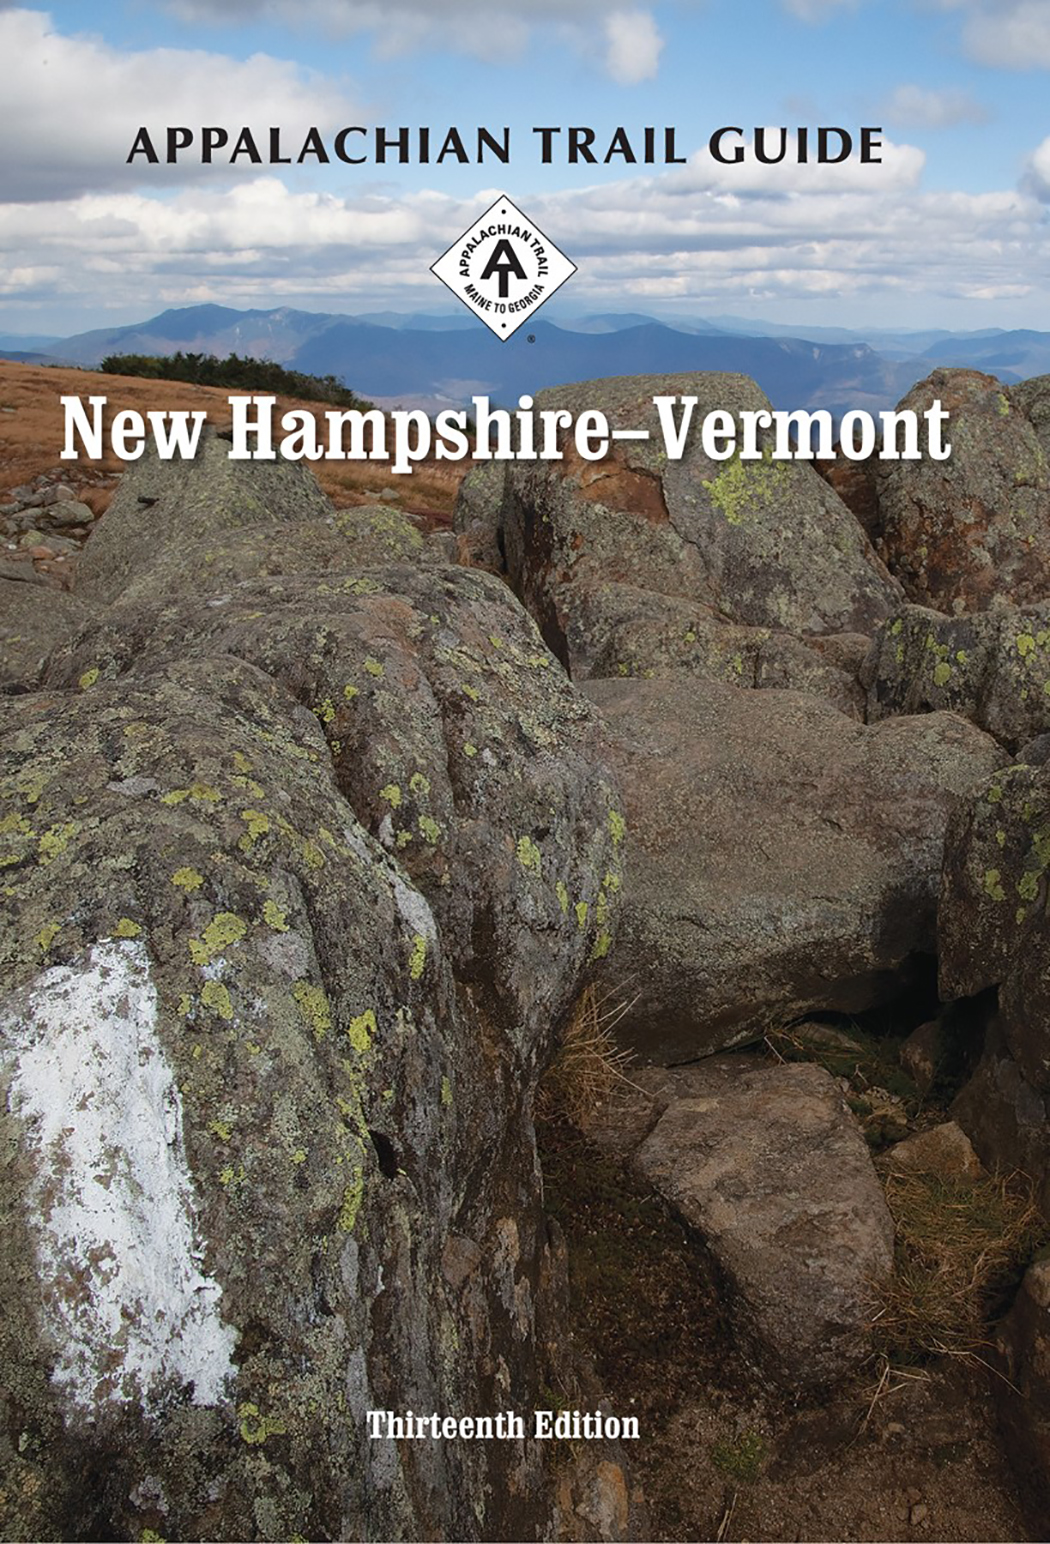 Appalachian Trail Guide to New Hampshire-Vermont